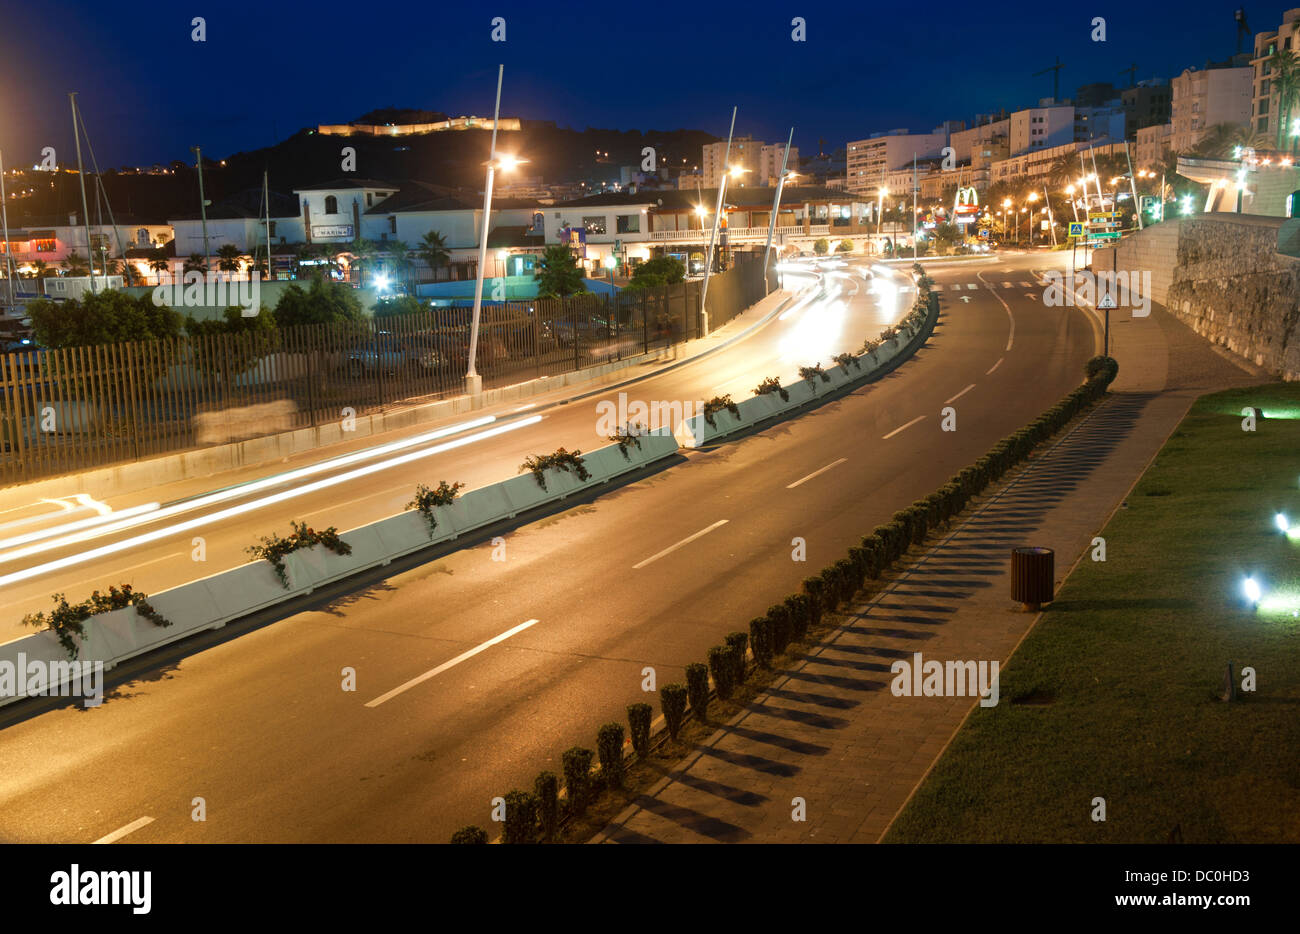 Paseo de las Palmeras road and Monte Hacho Castle in background .Ceuta . Spain. - Stock Image